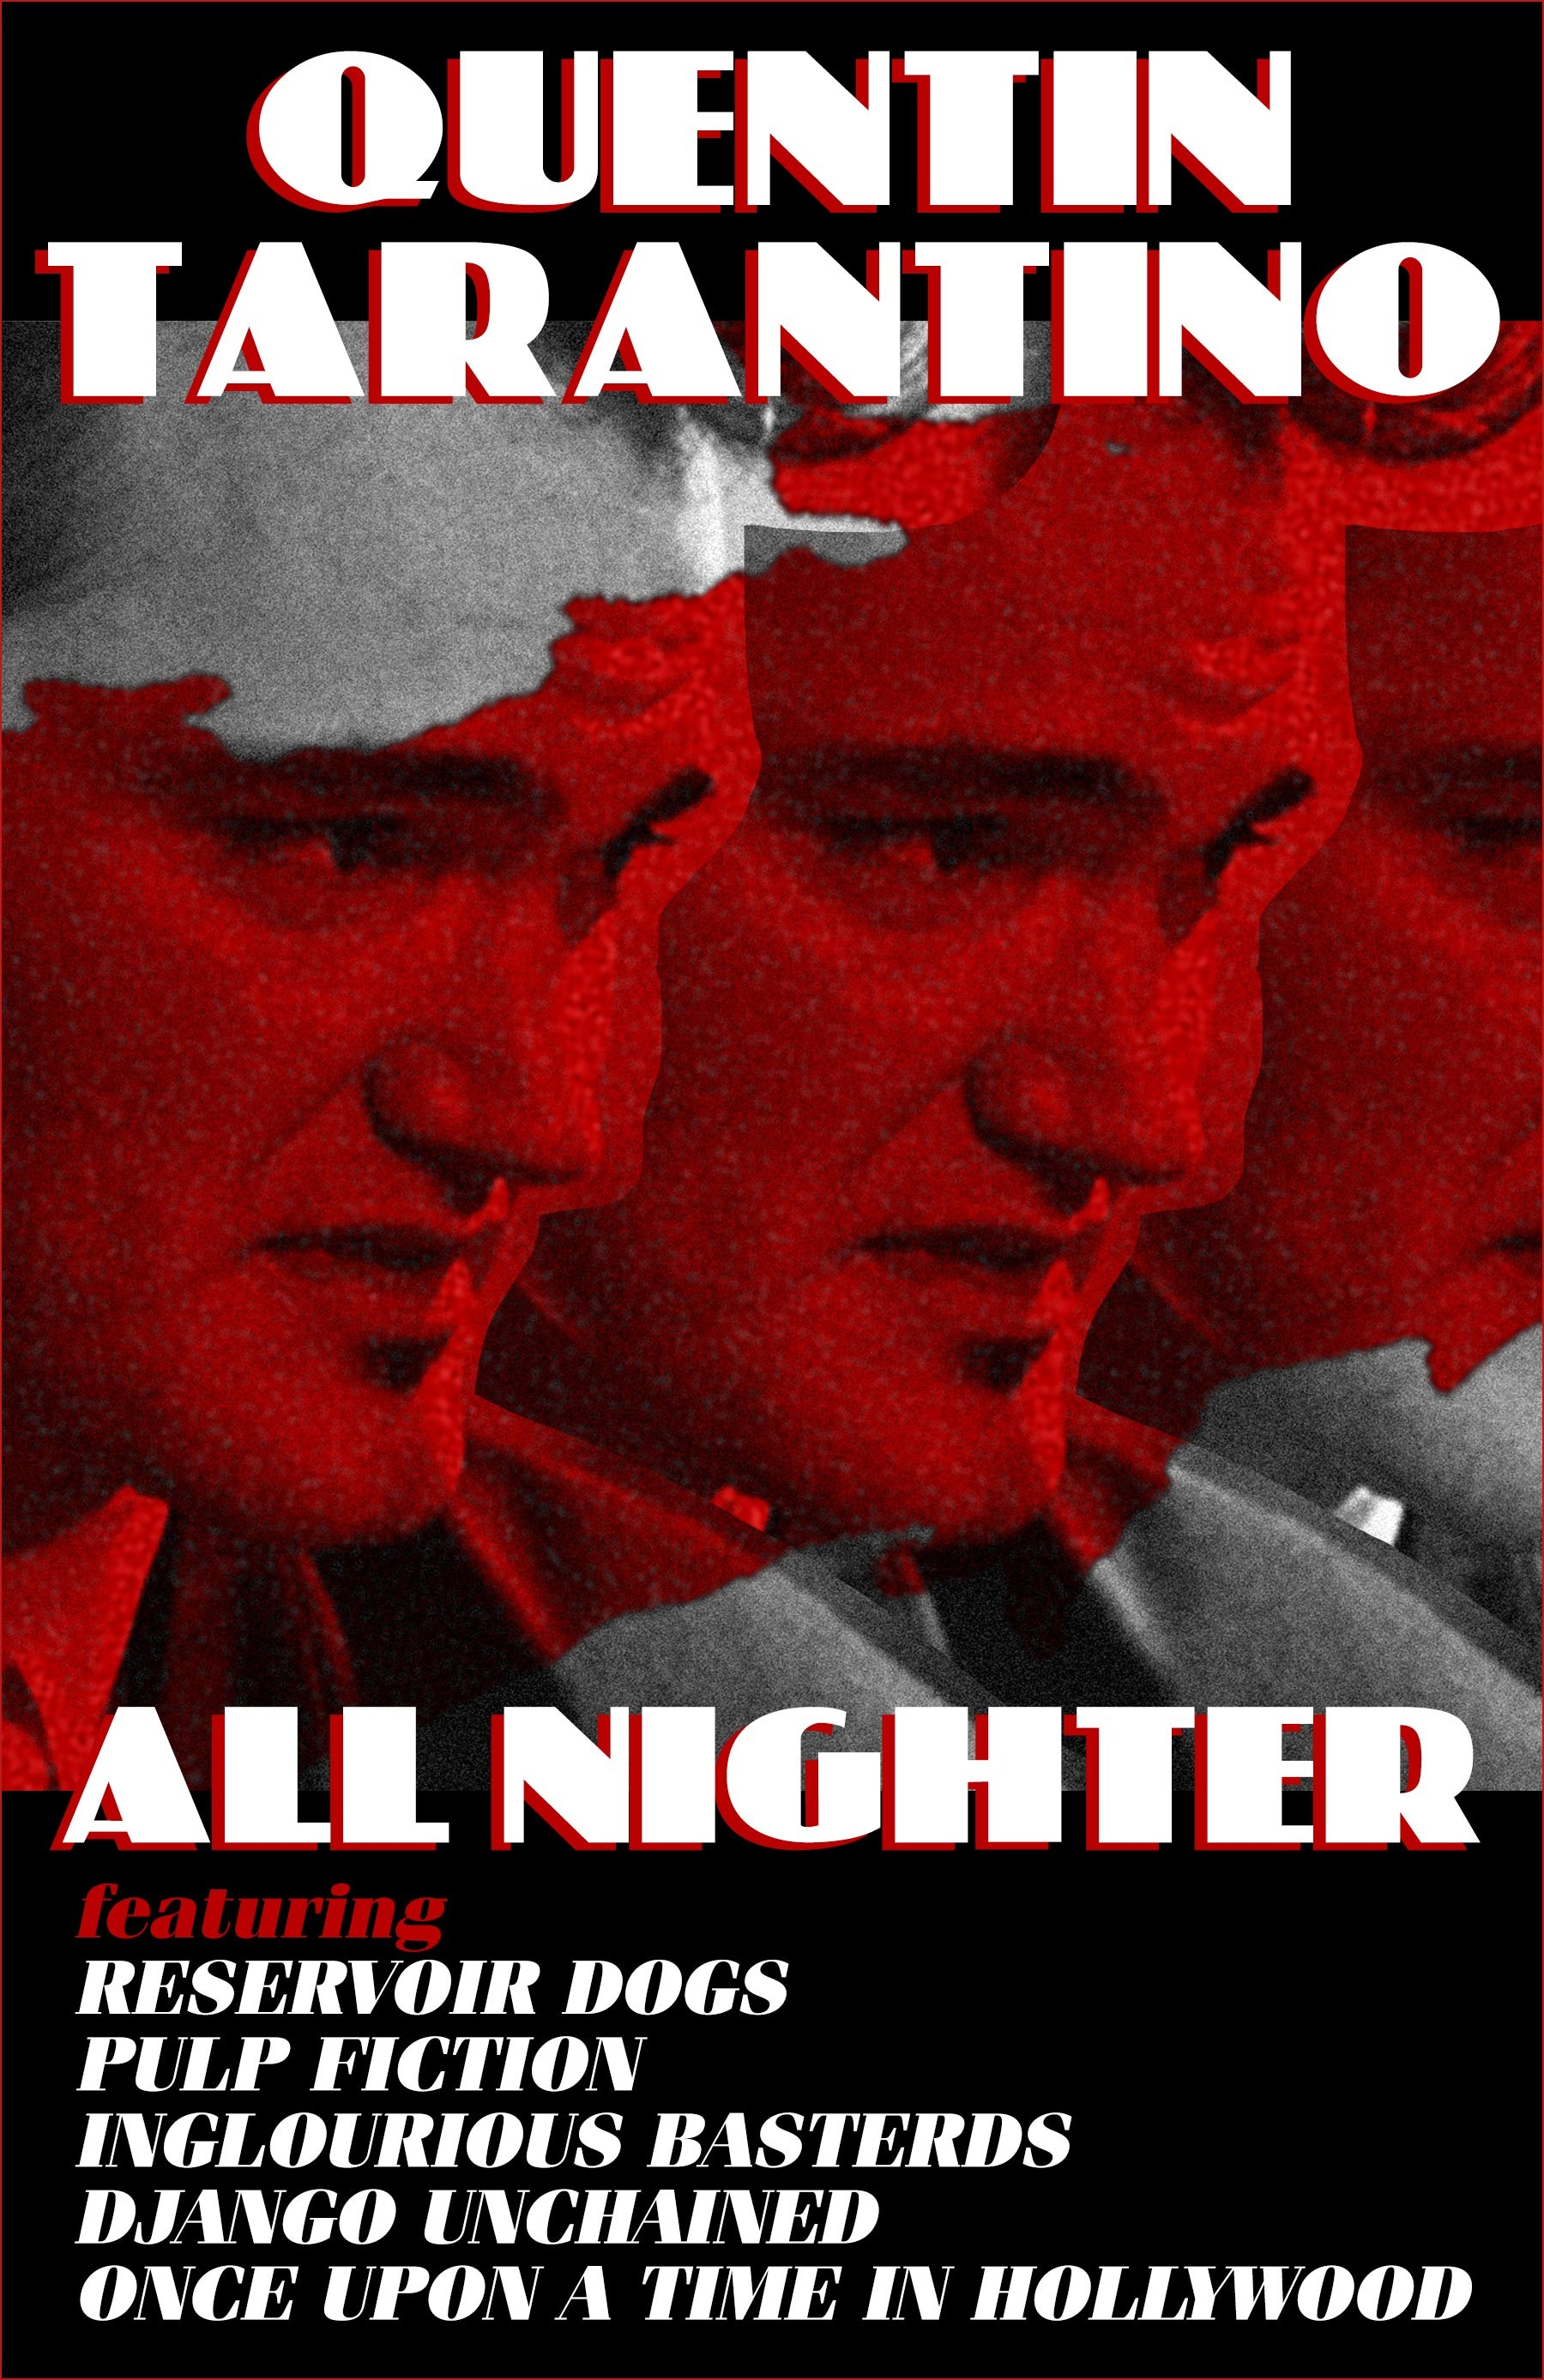 QUENTIN TARANTINO ALL-NIGHTER